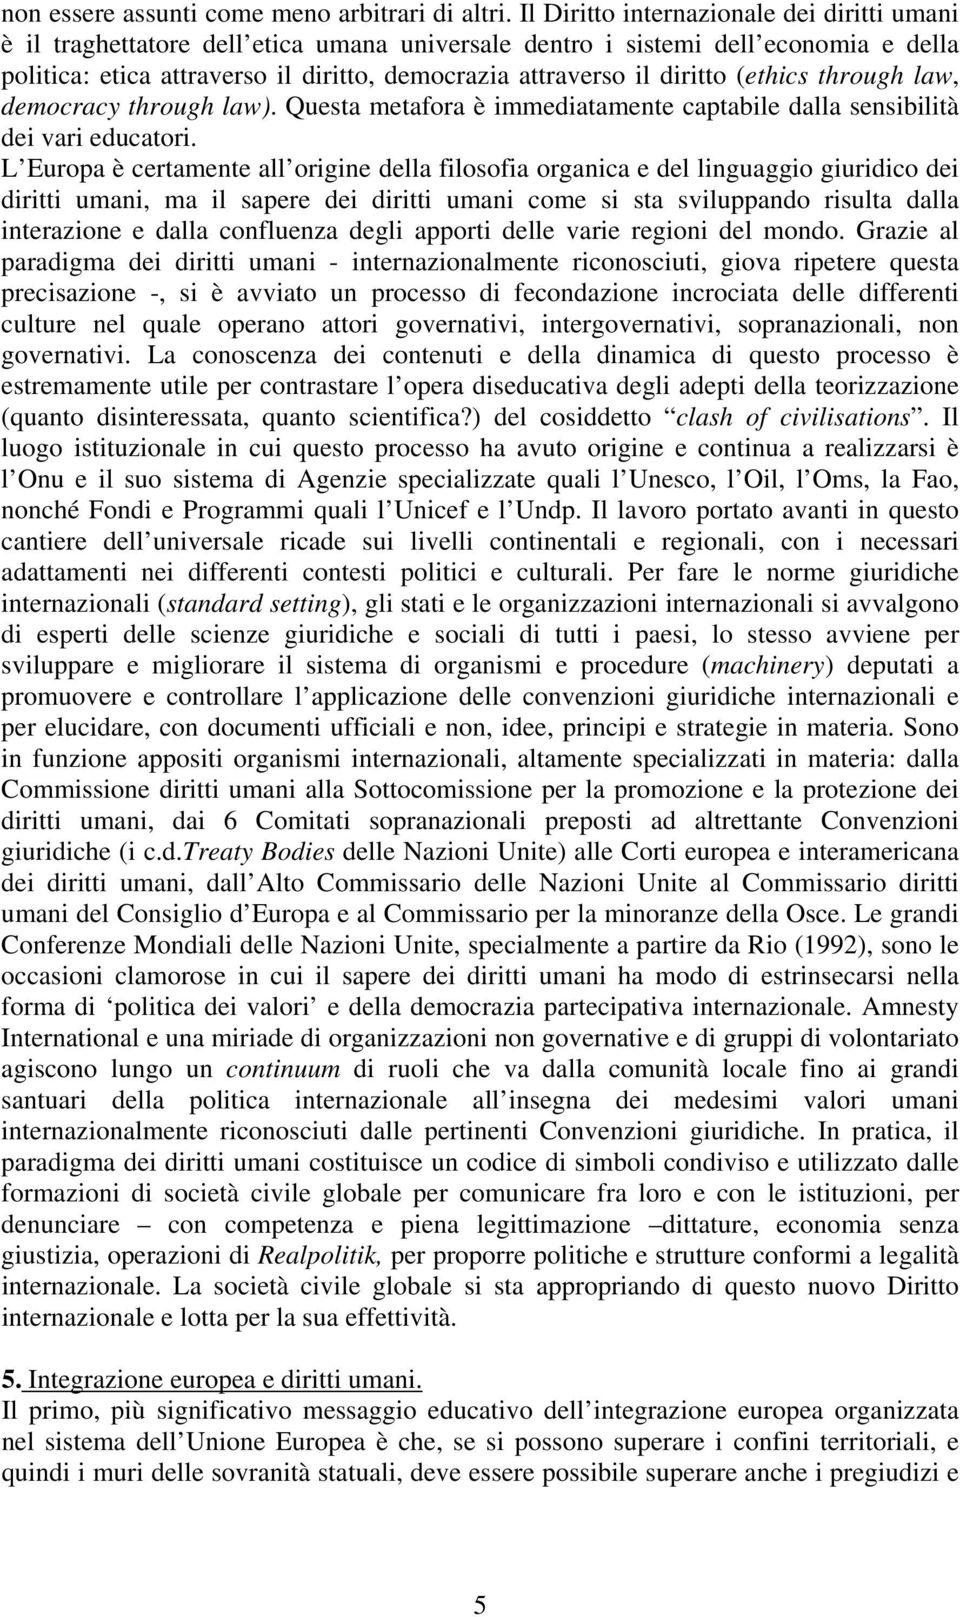 diritto (ethics through law, democracy through law). Questa metafora è immediatamente captabile dalla sensibilità dei vari educatori.